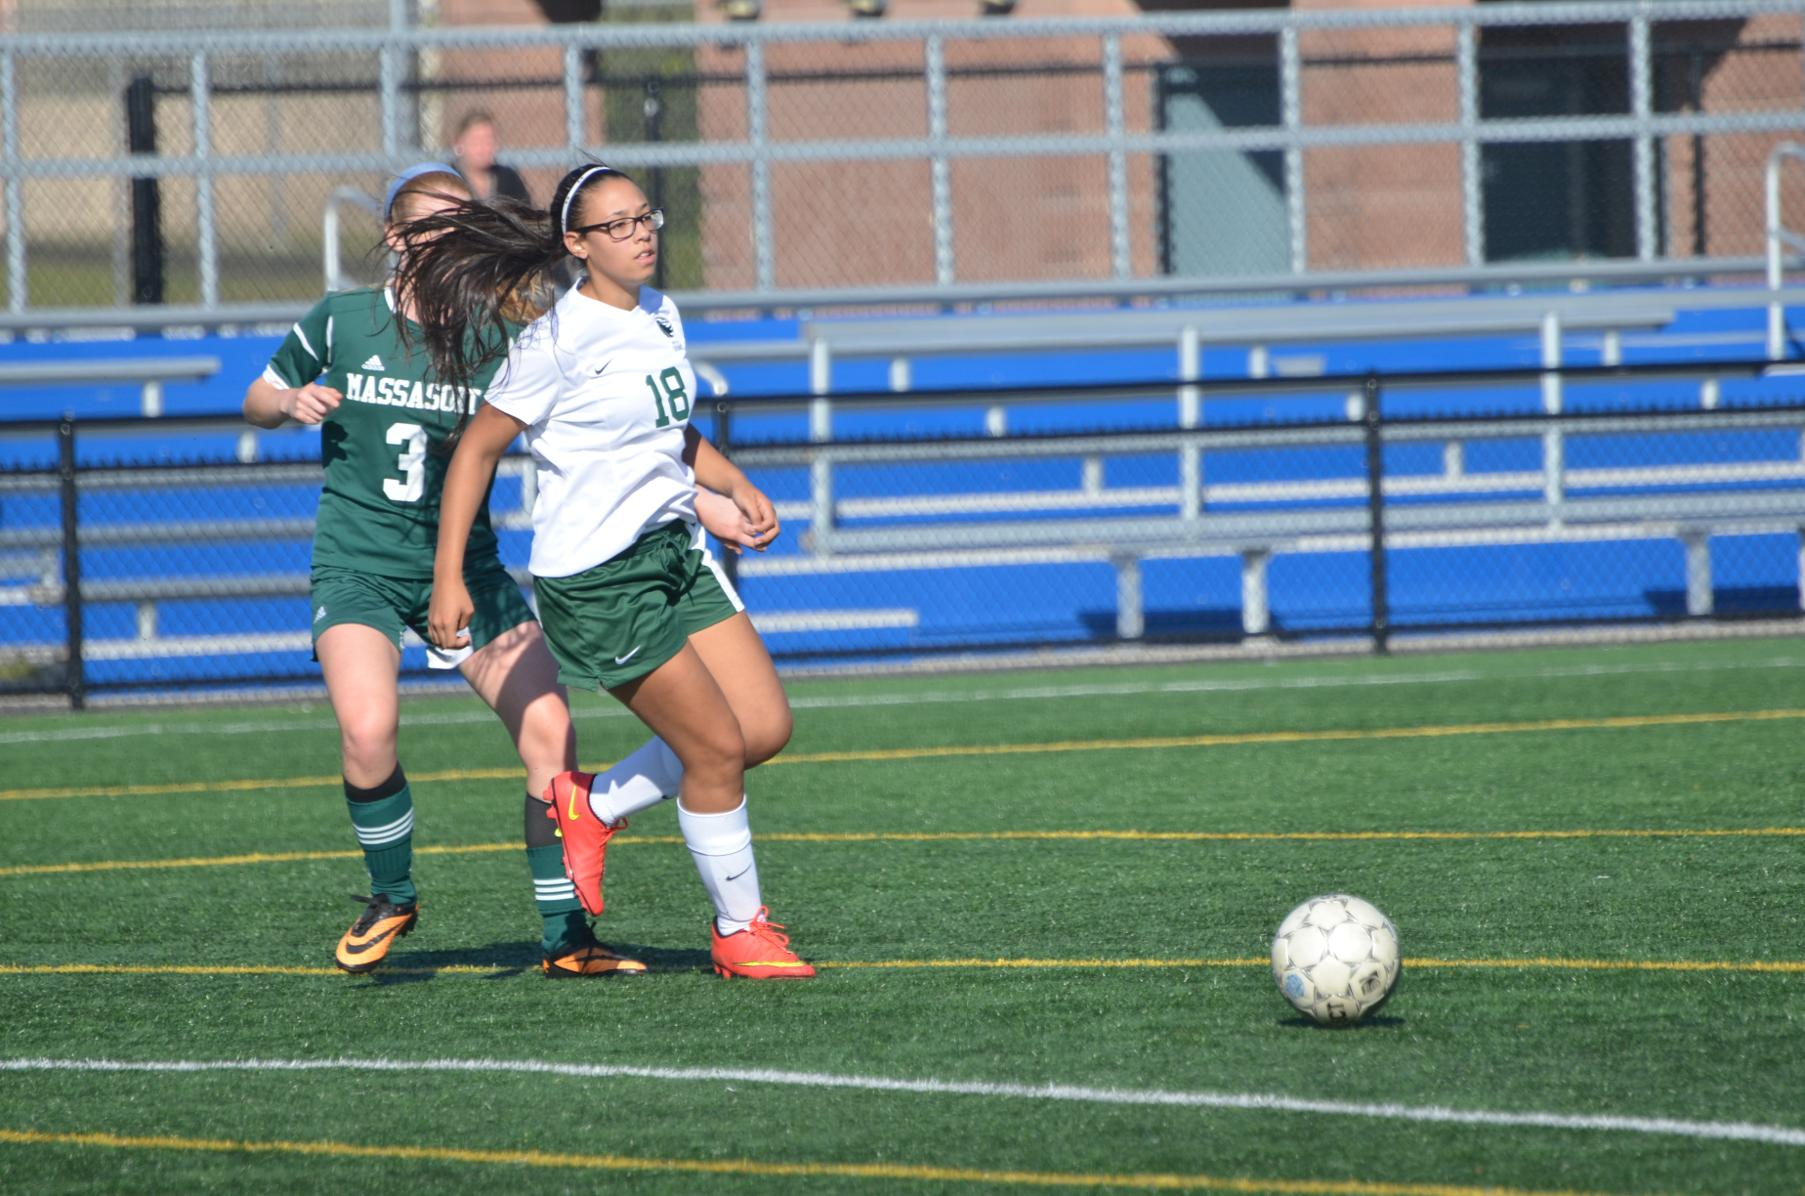 Women's Soccer Outplayed By Talented Holyoke Team By A Score Of 6-1